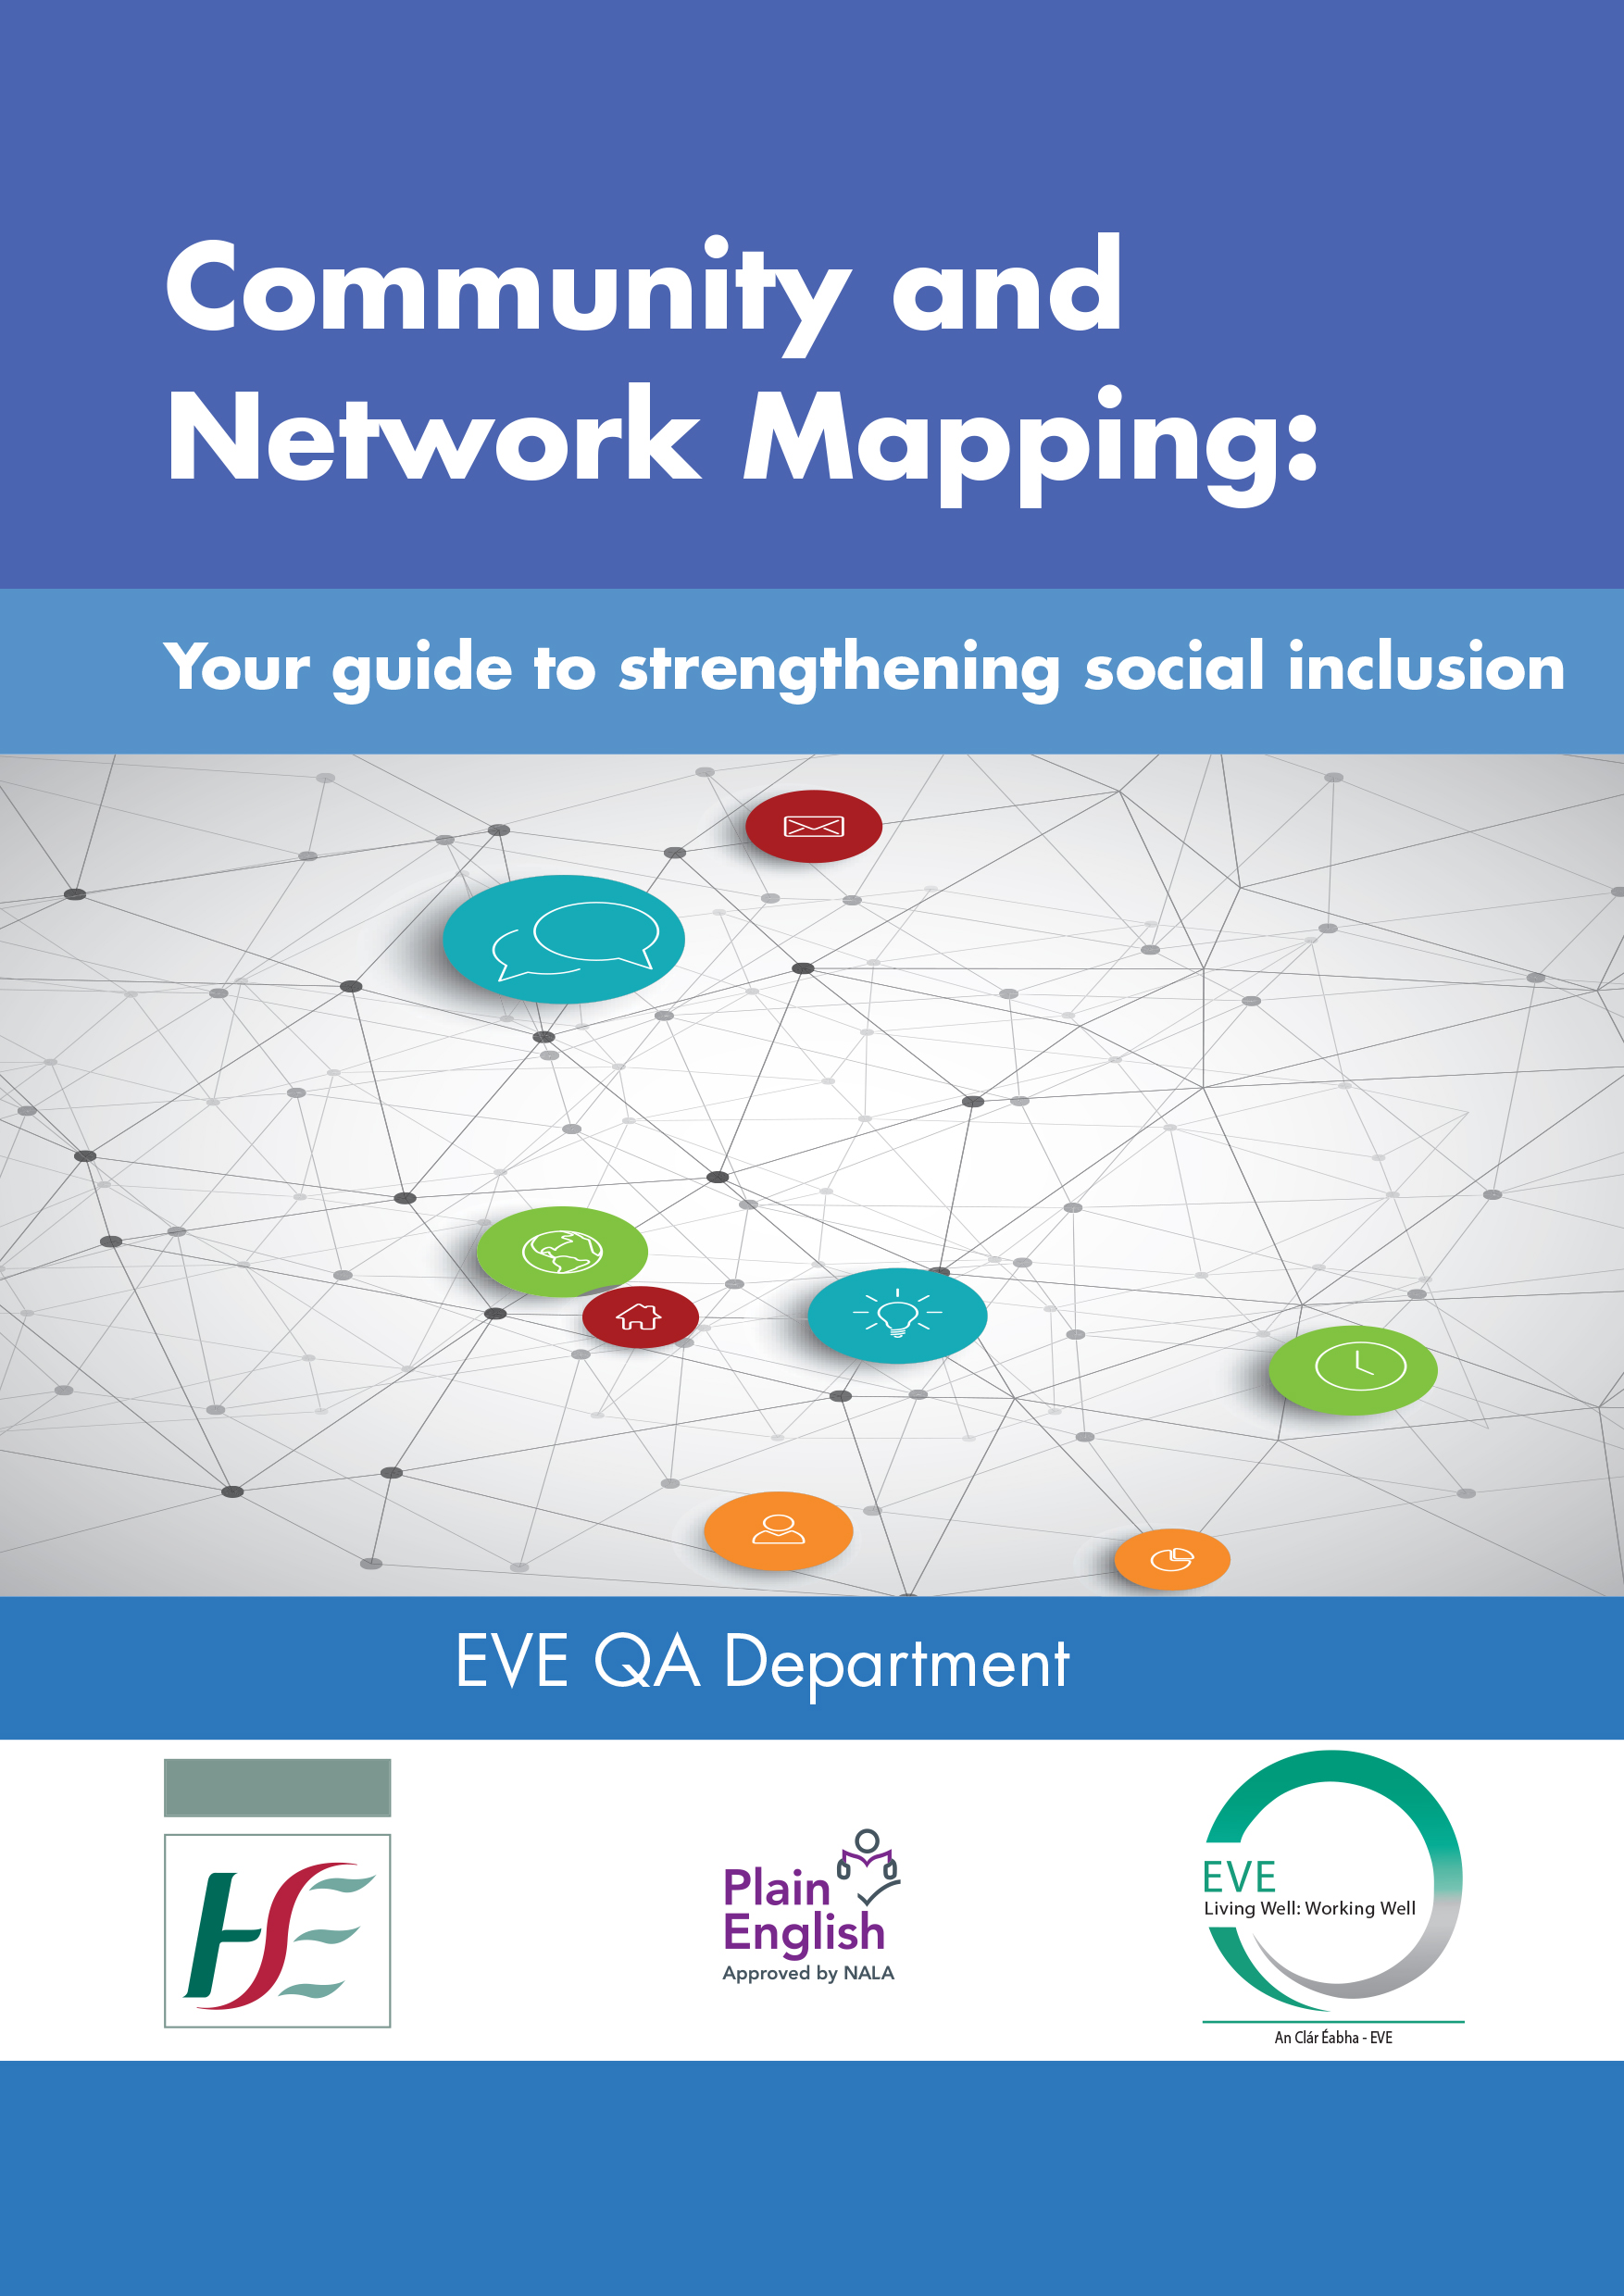 EVE Community & Network Mapping Cover